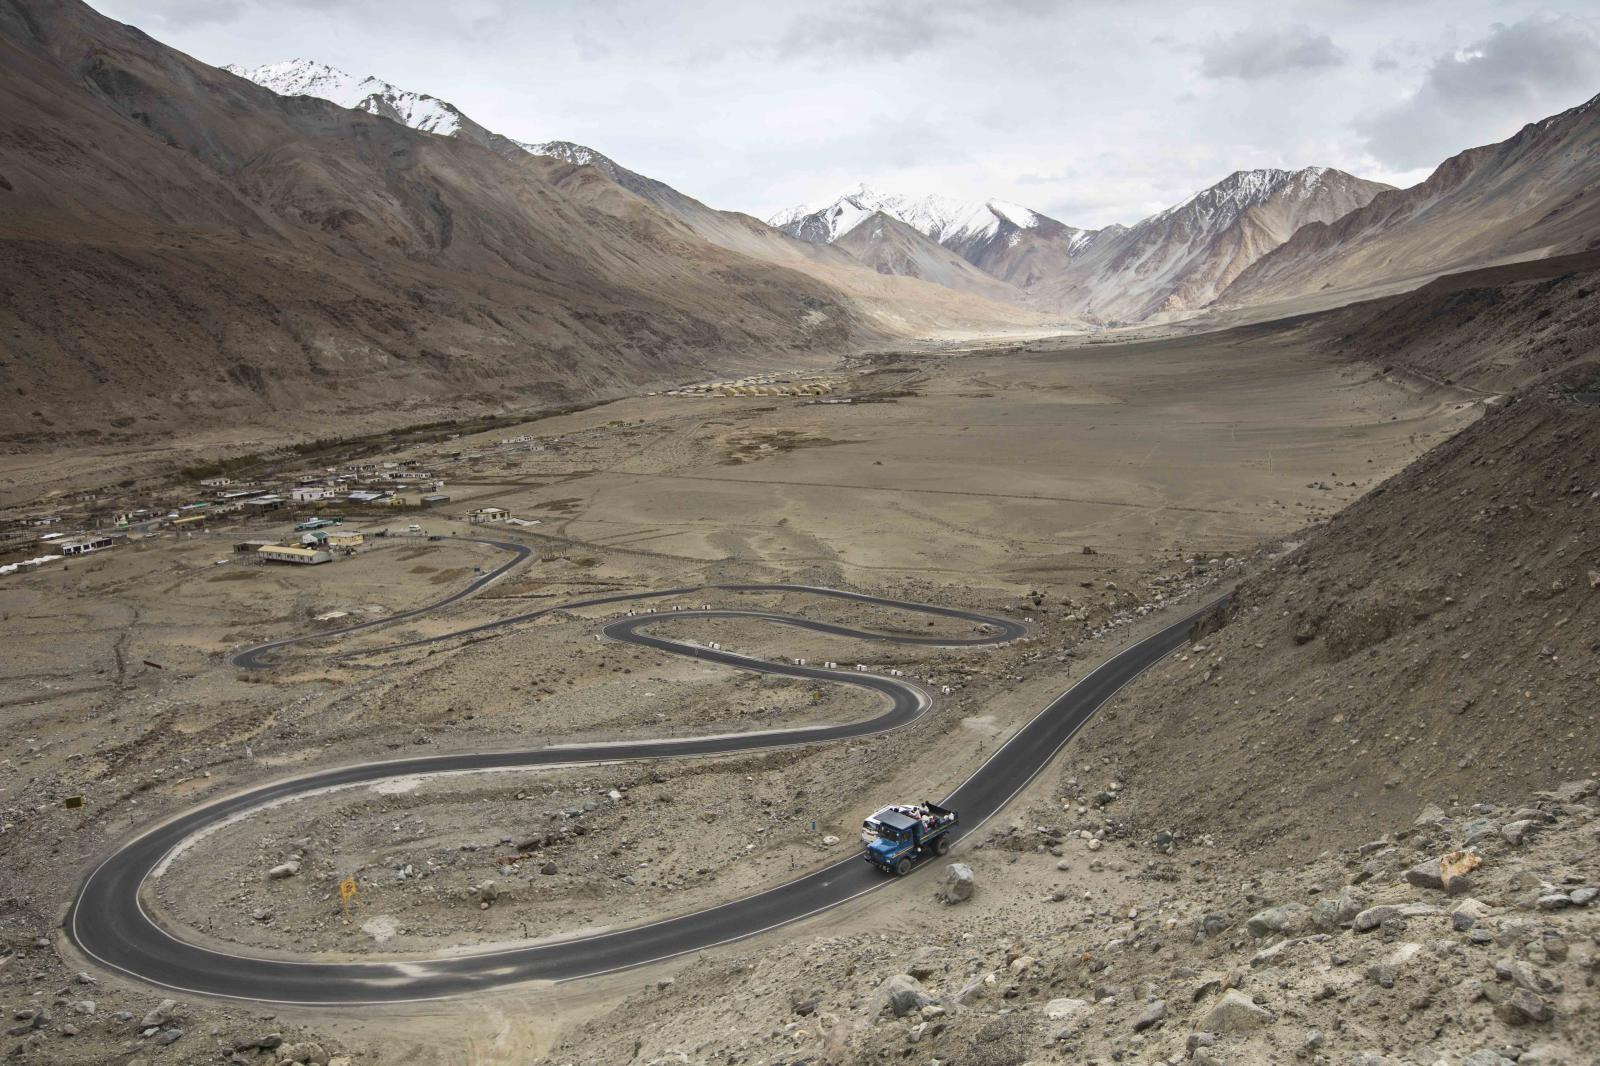 Road maintenance workers from Jharkhand state and local workers from Ladakh ride on the back of a truck at the end of their working day along Pangong Lake road in northern India's Ladakh region.